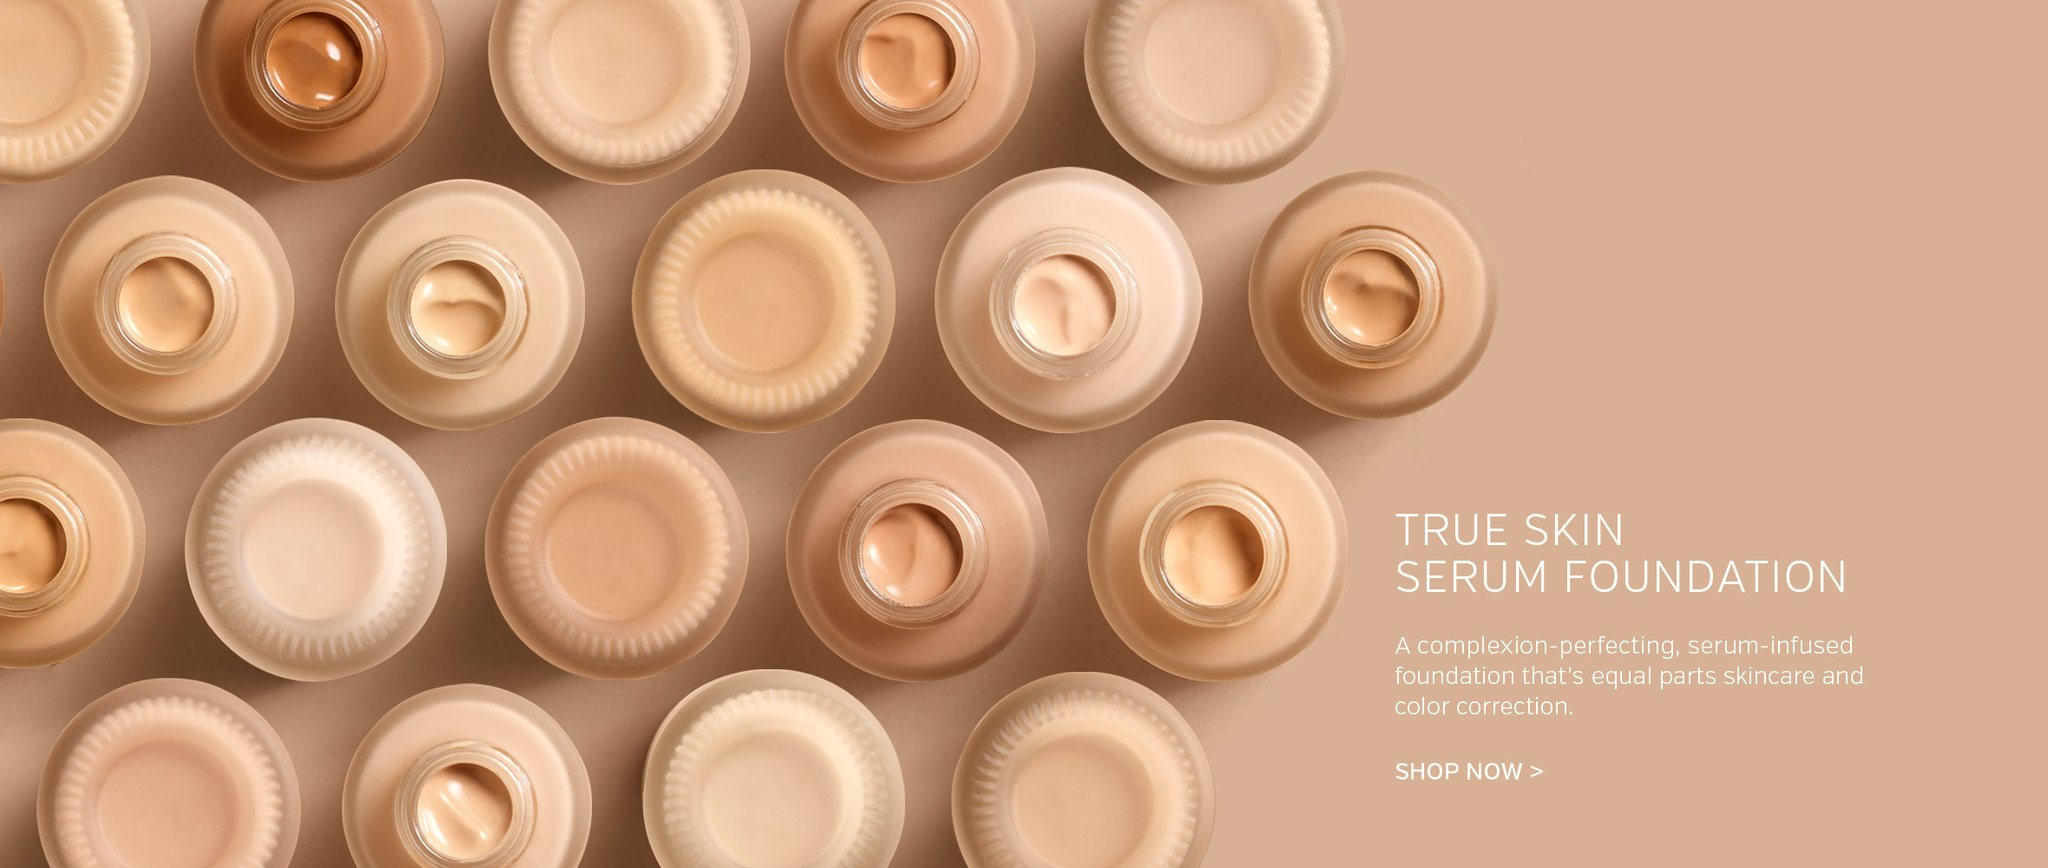 True Skin Serum Foundation Available in 10 Shades